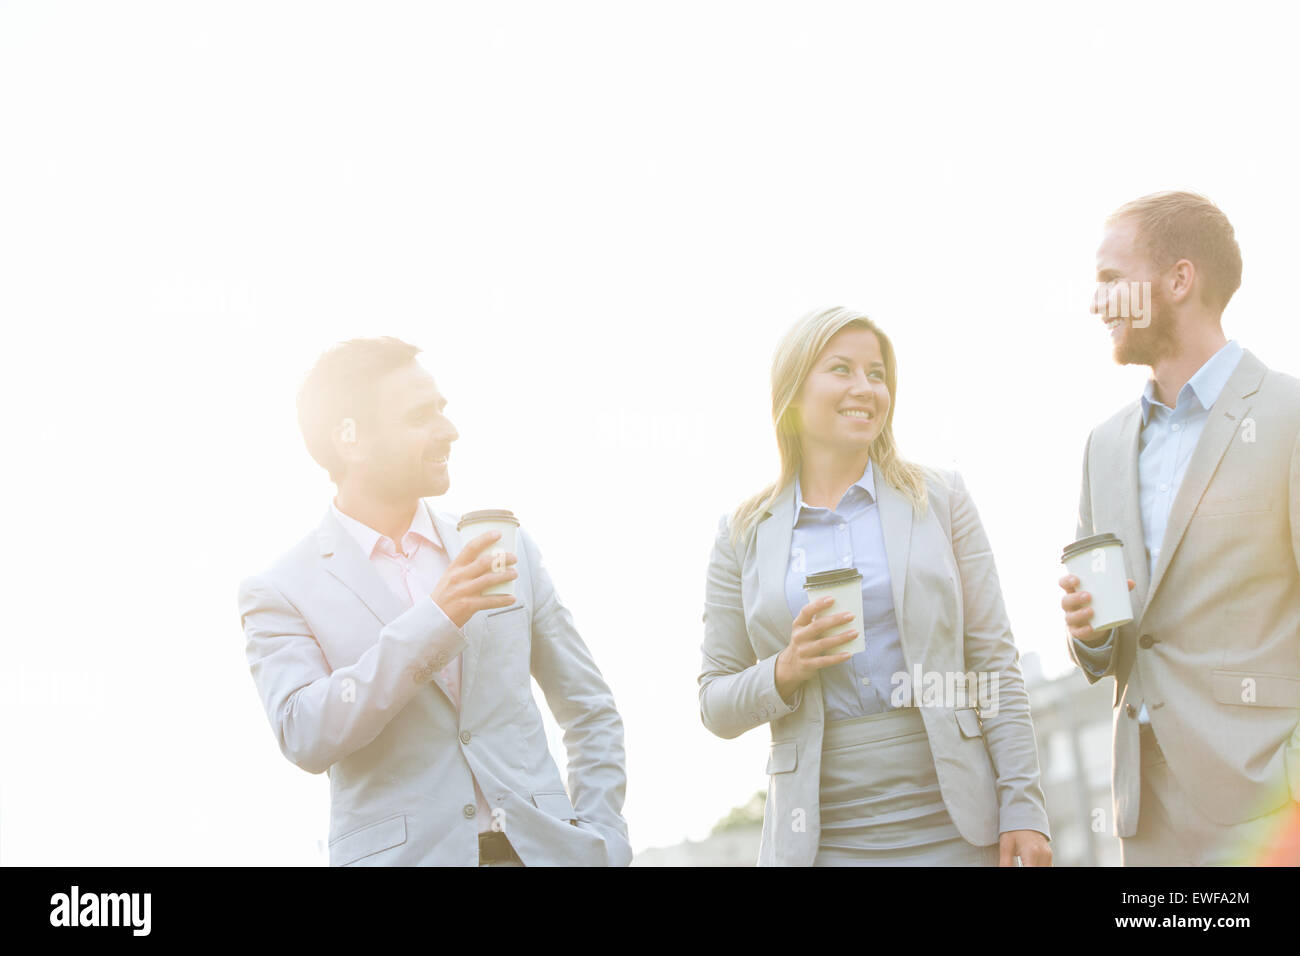 Businesspeople with disposable cups talking against clear sky on sunny day - Stock Image